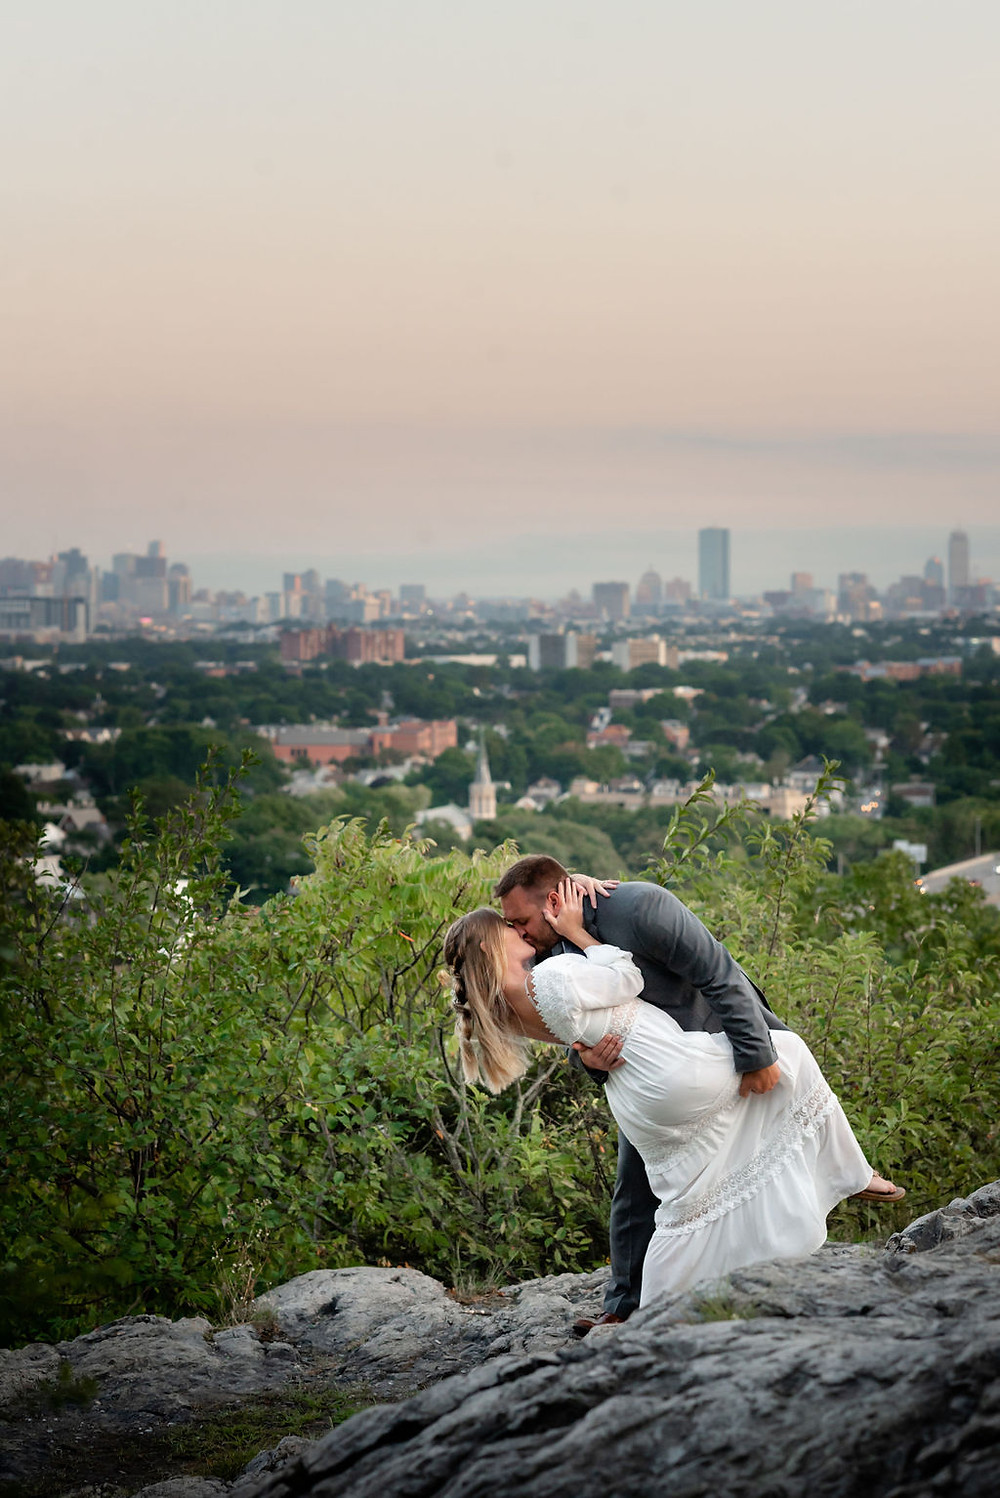 a couple doing a dip kiss during their elopement. you can see the boston skyline in the background